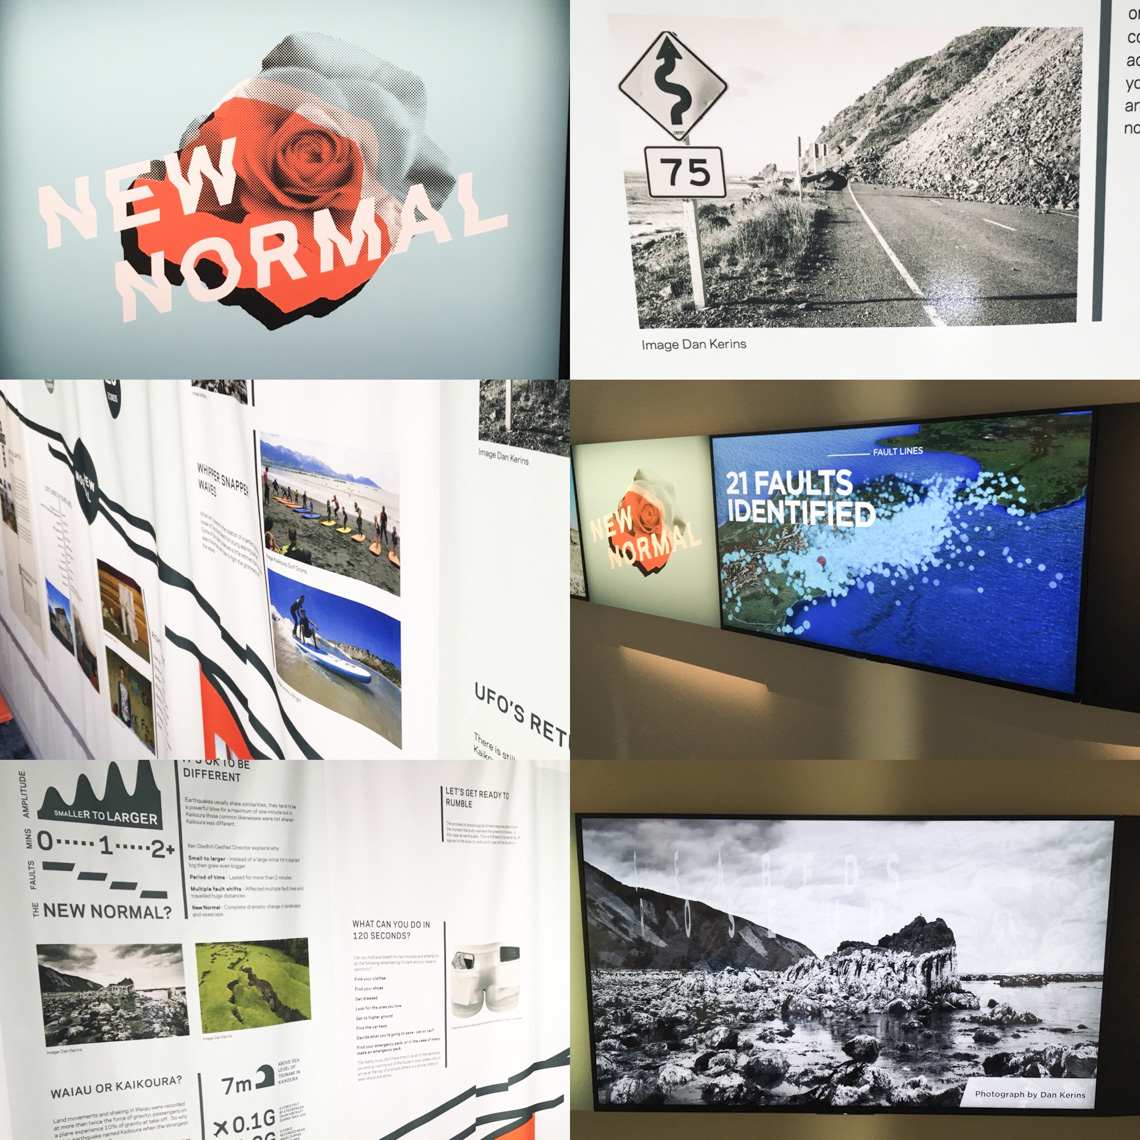 The New Normal- Kaikoura Museum Exhibition